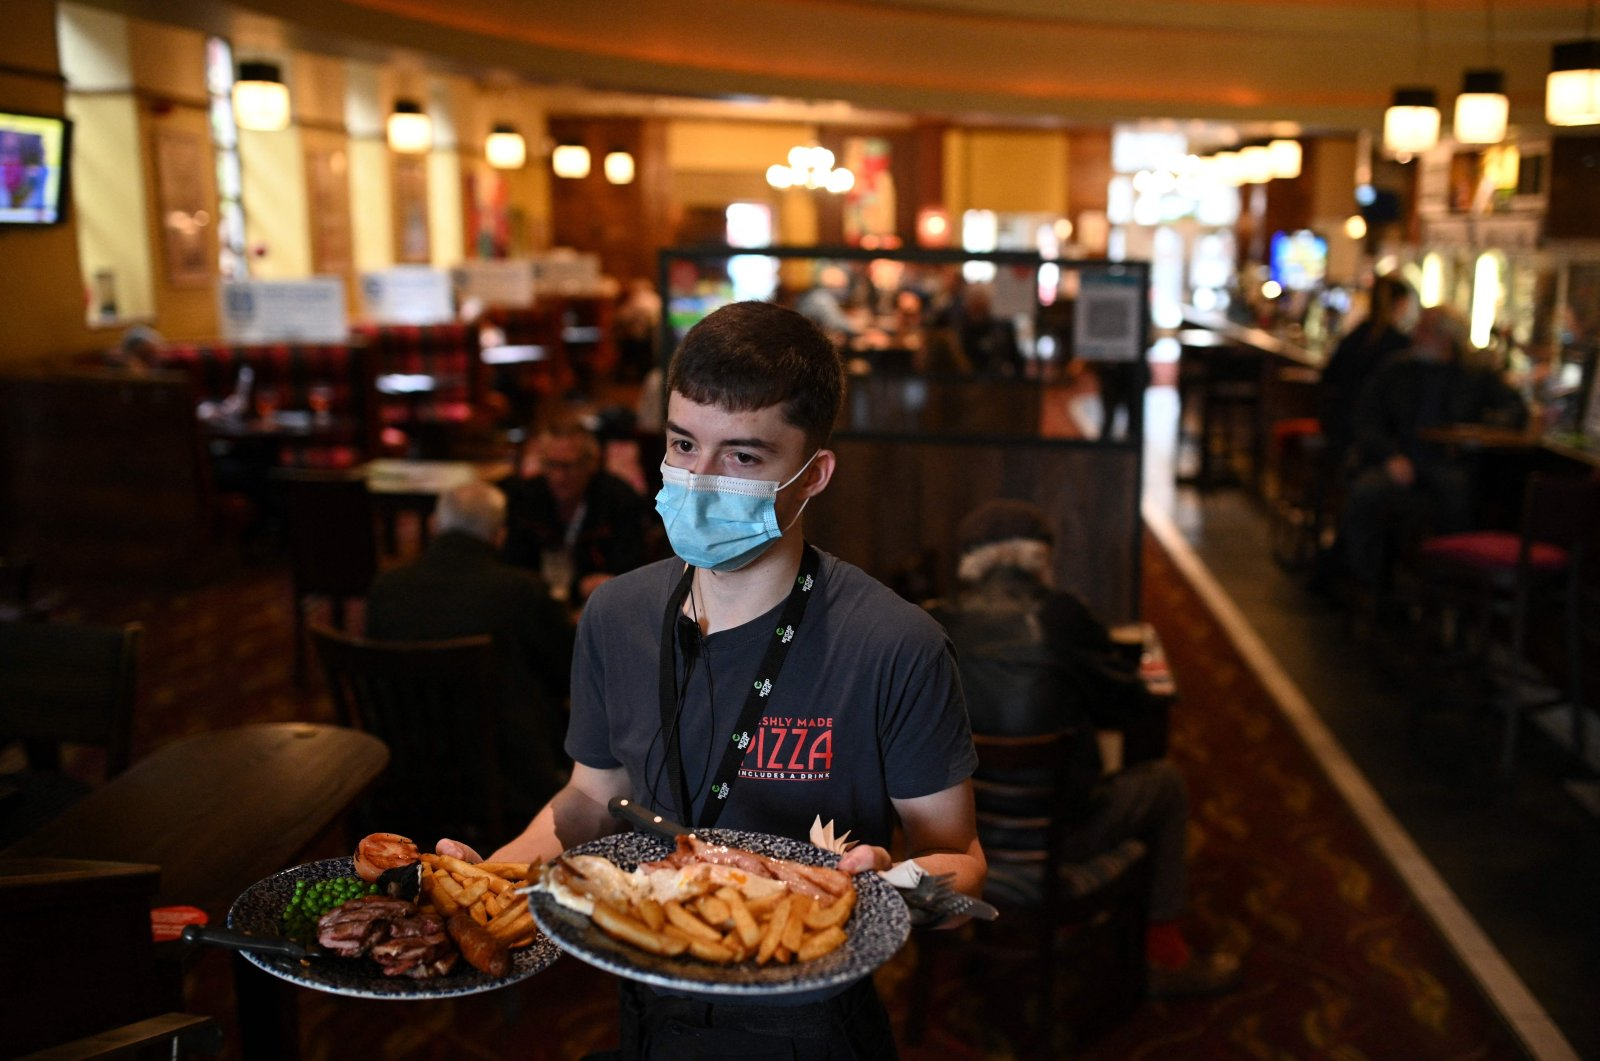 A member of the bar staff serves food in a Wetherspoons pub in Leigh, Greater Manchester, northwest England, Oct. 22, 2020. (AFP Photo)